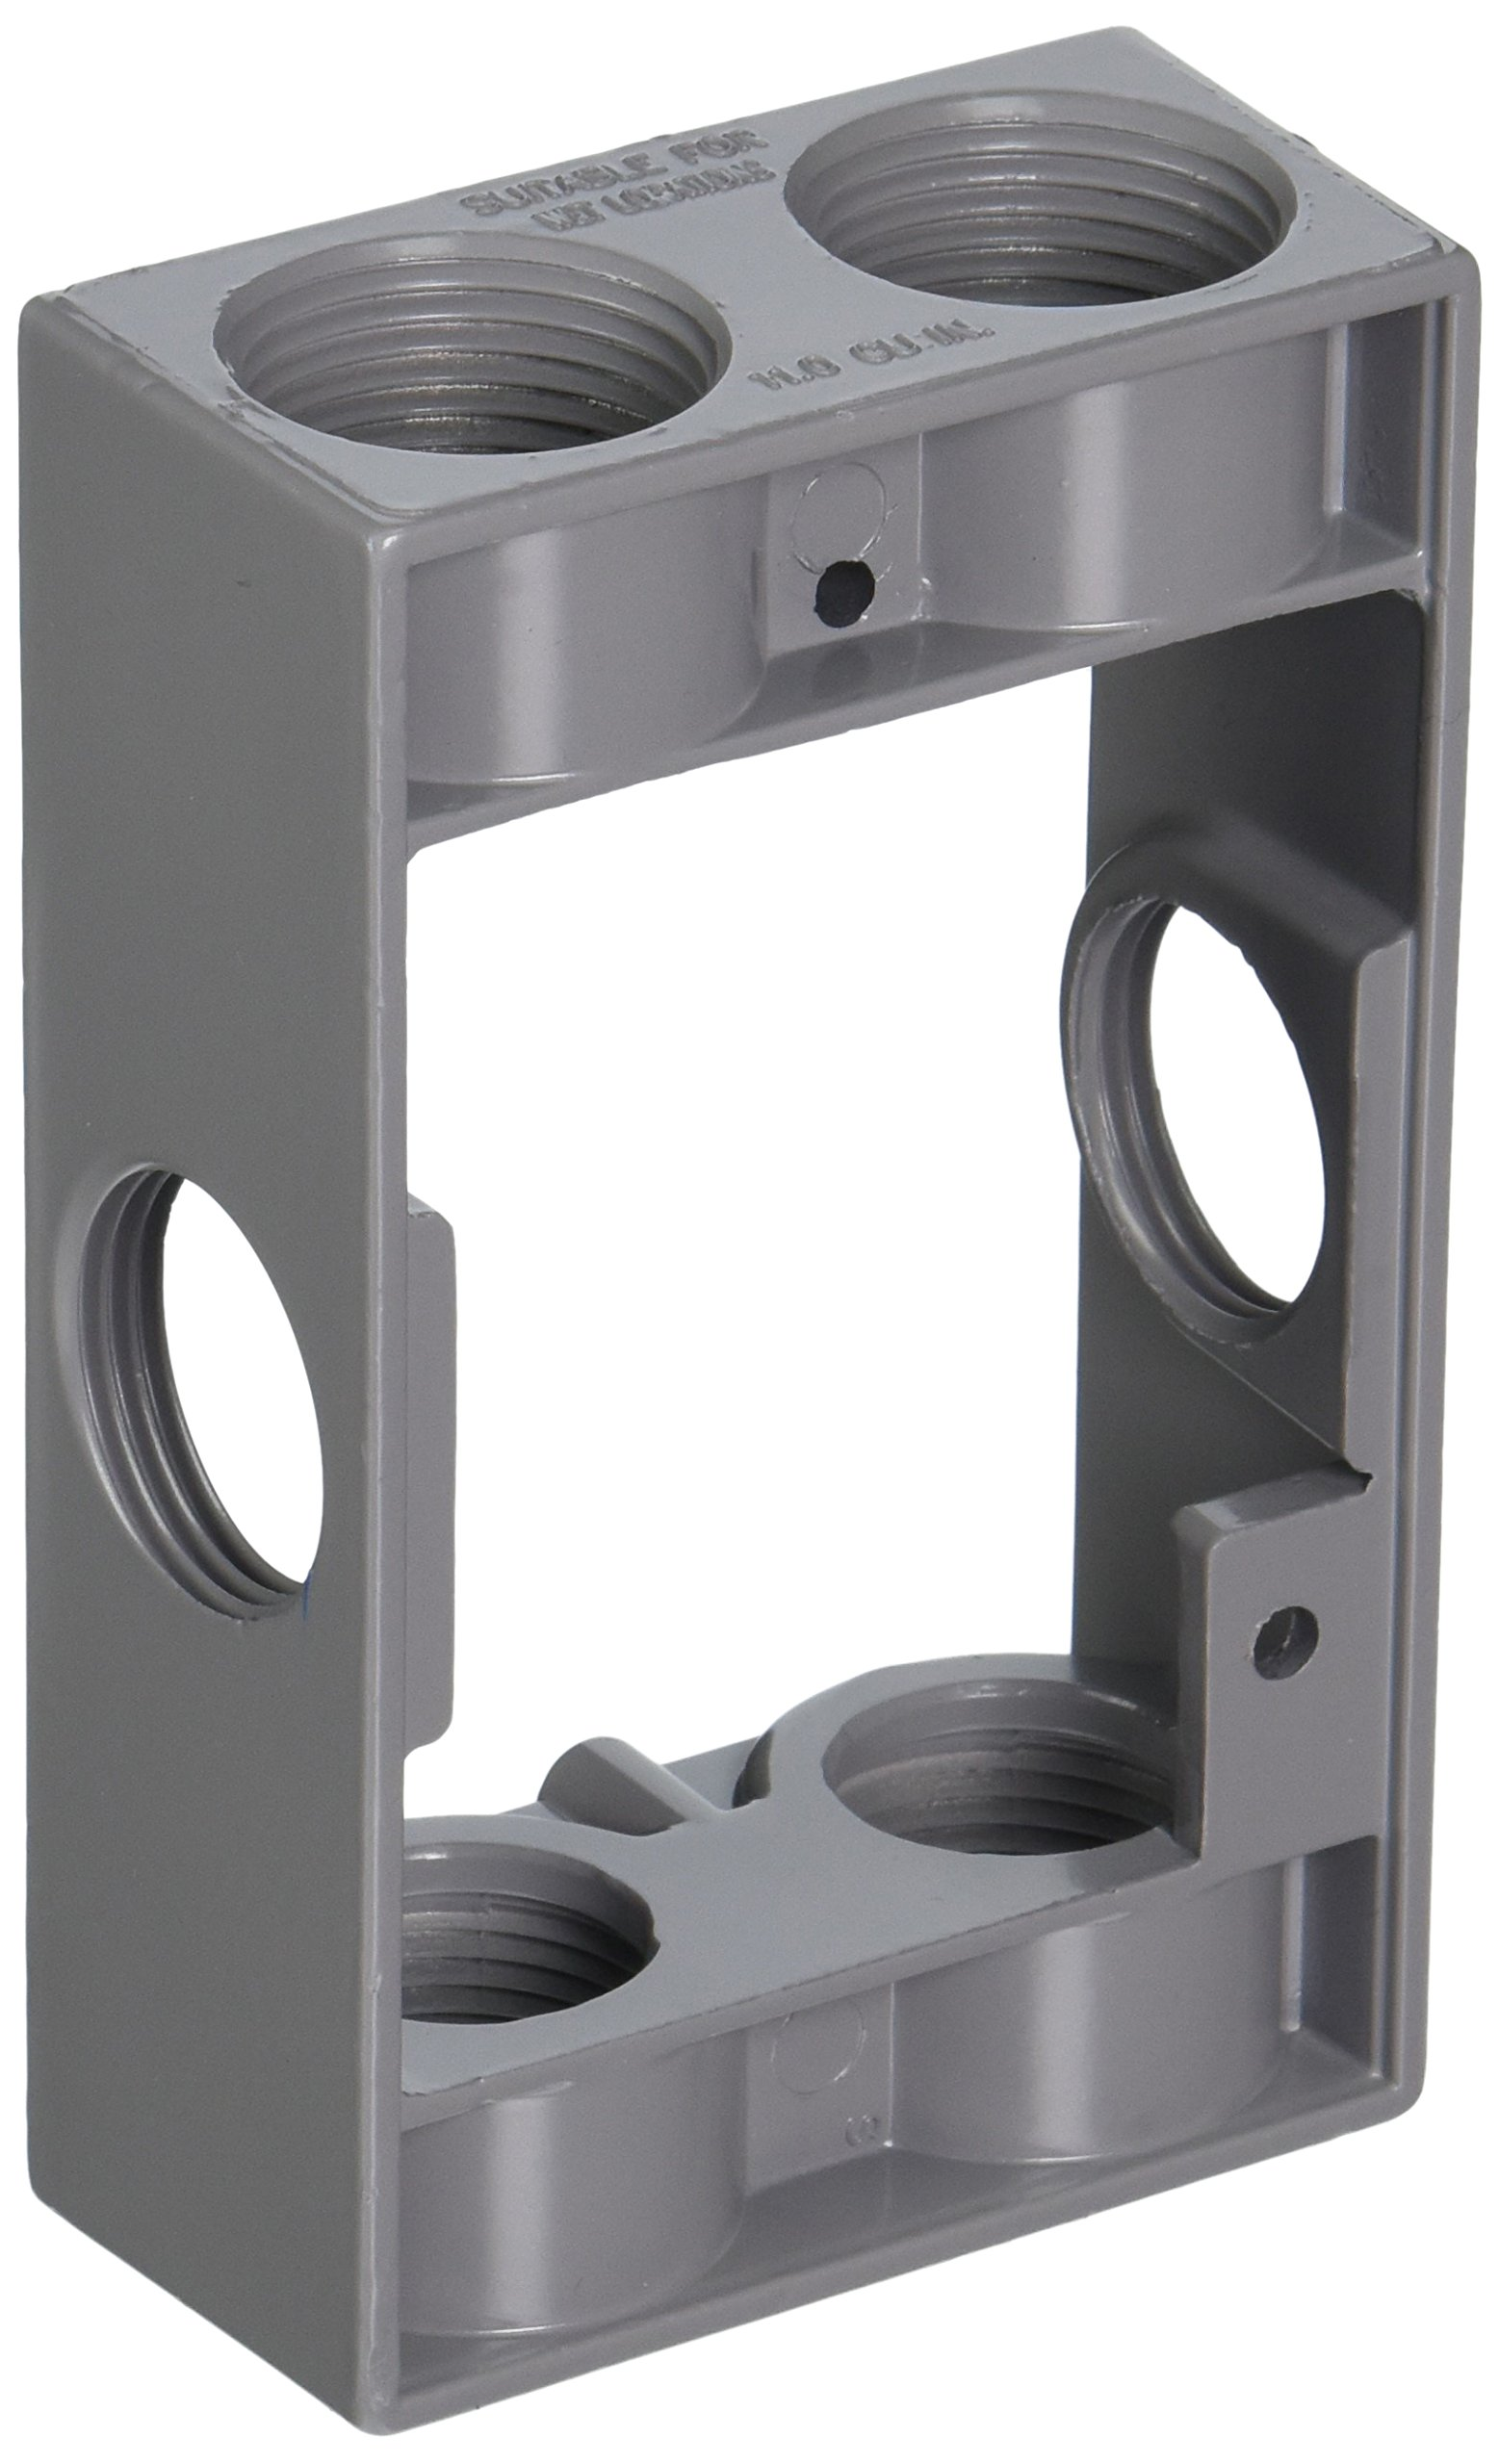 Hubbell-Bell 5405-0 Weatherproof Box Extension Adapter, 5-1/4-Inch X 3-1/2-Inch